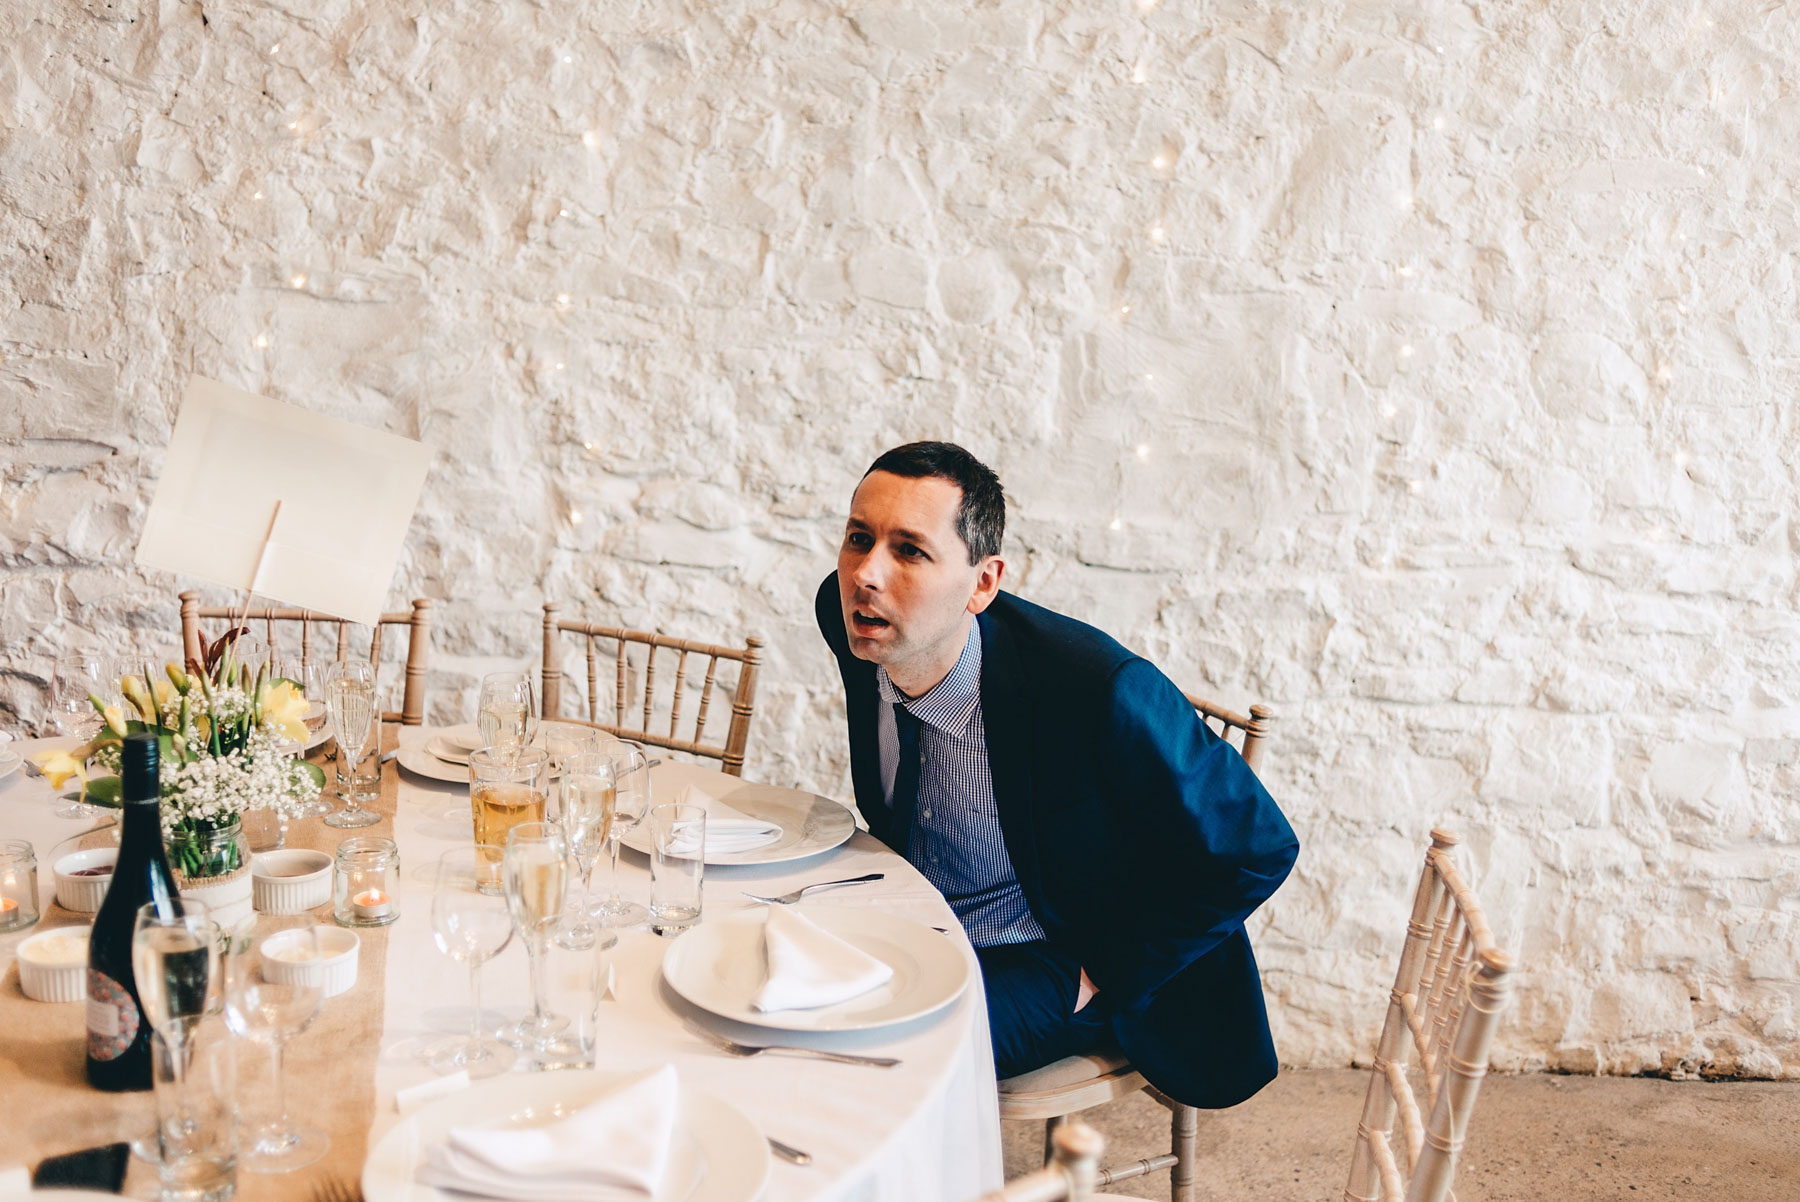 Man stares at table decorations at wedding